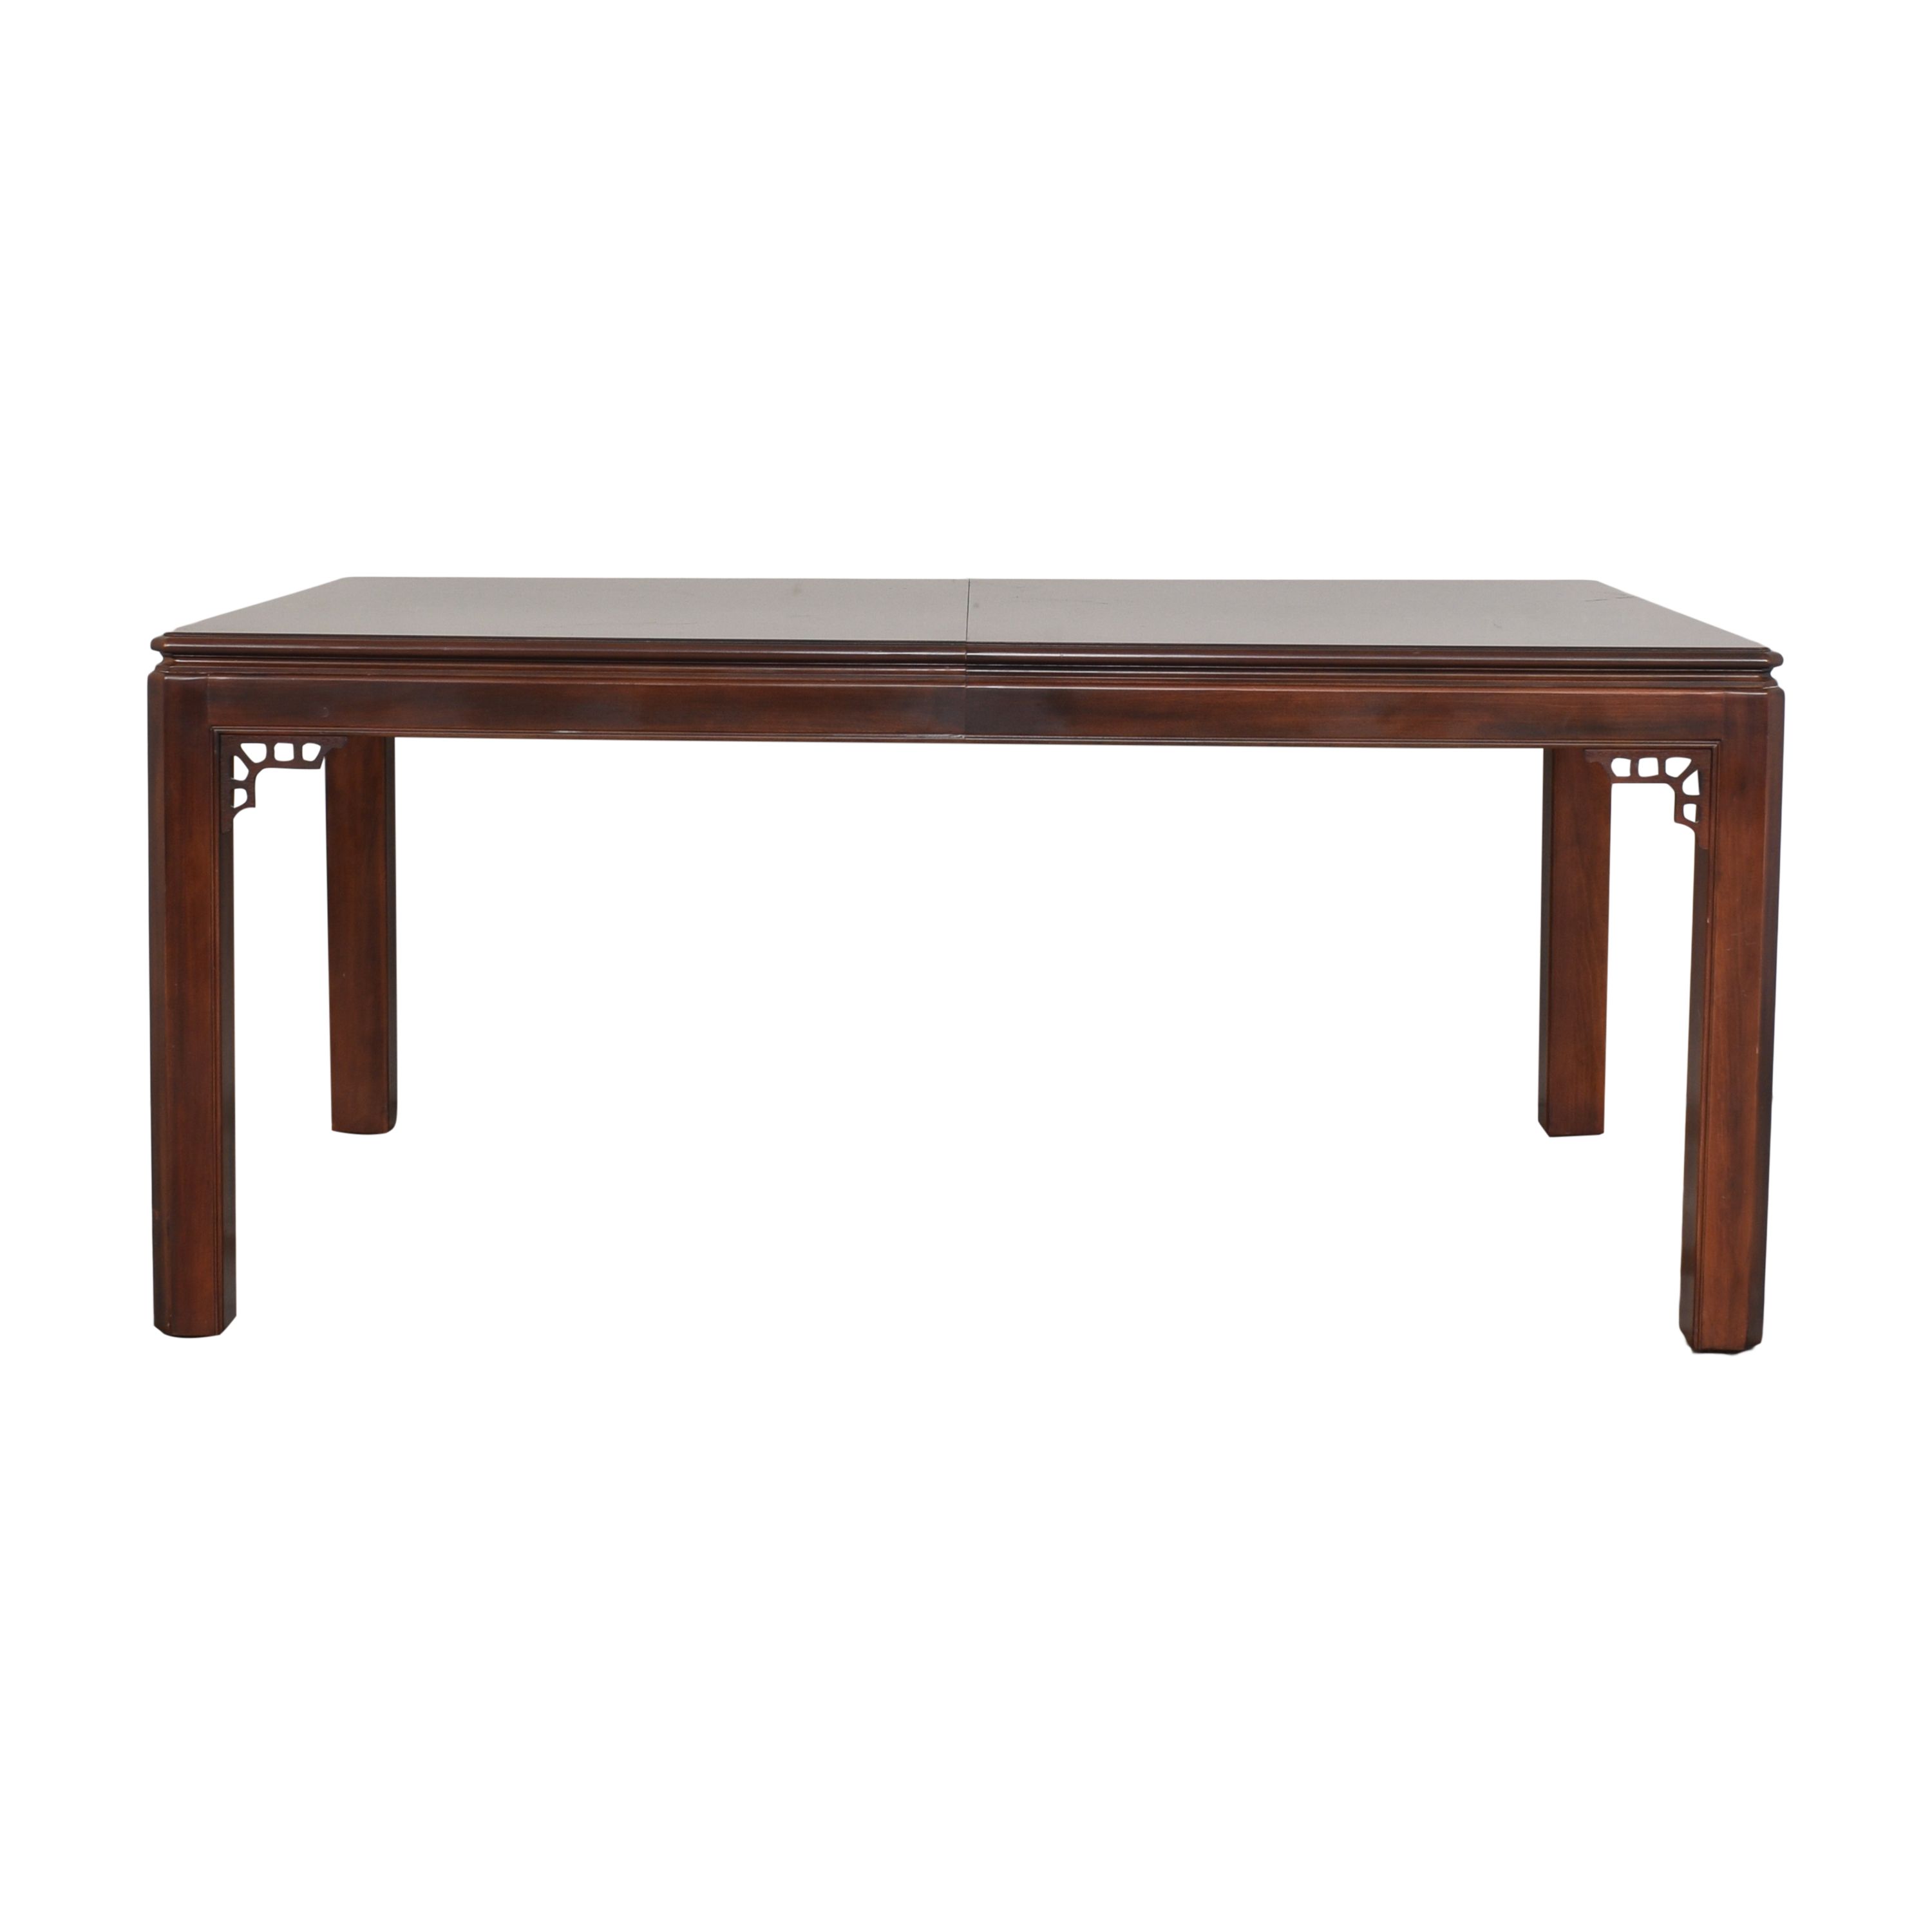 Drexel Drexel Chippendale Extendable Dining Table on sale